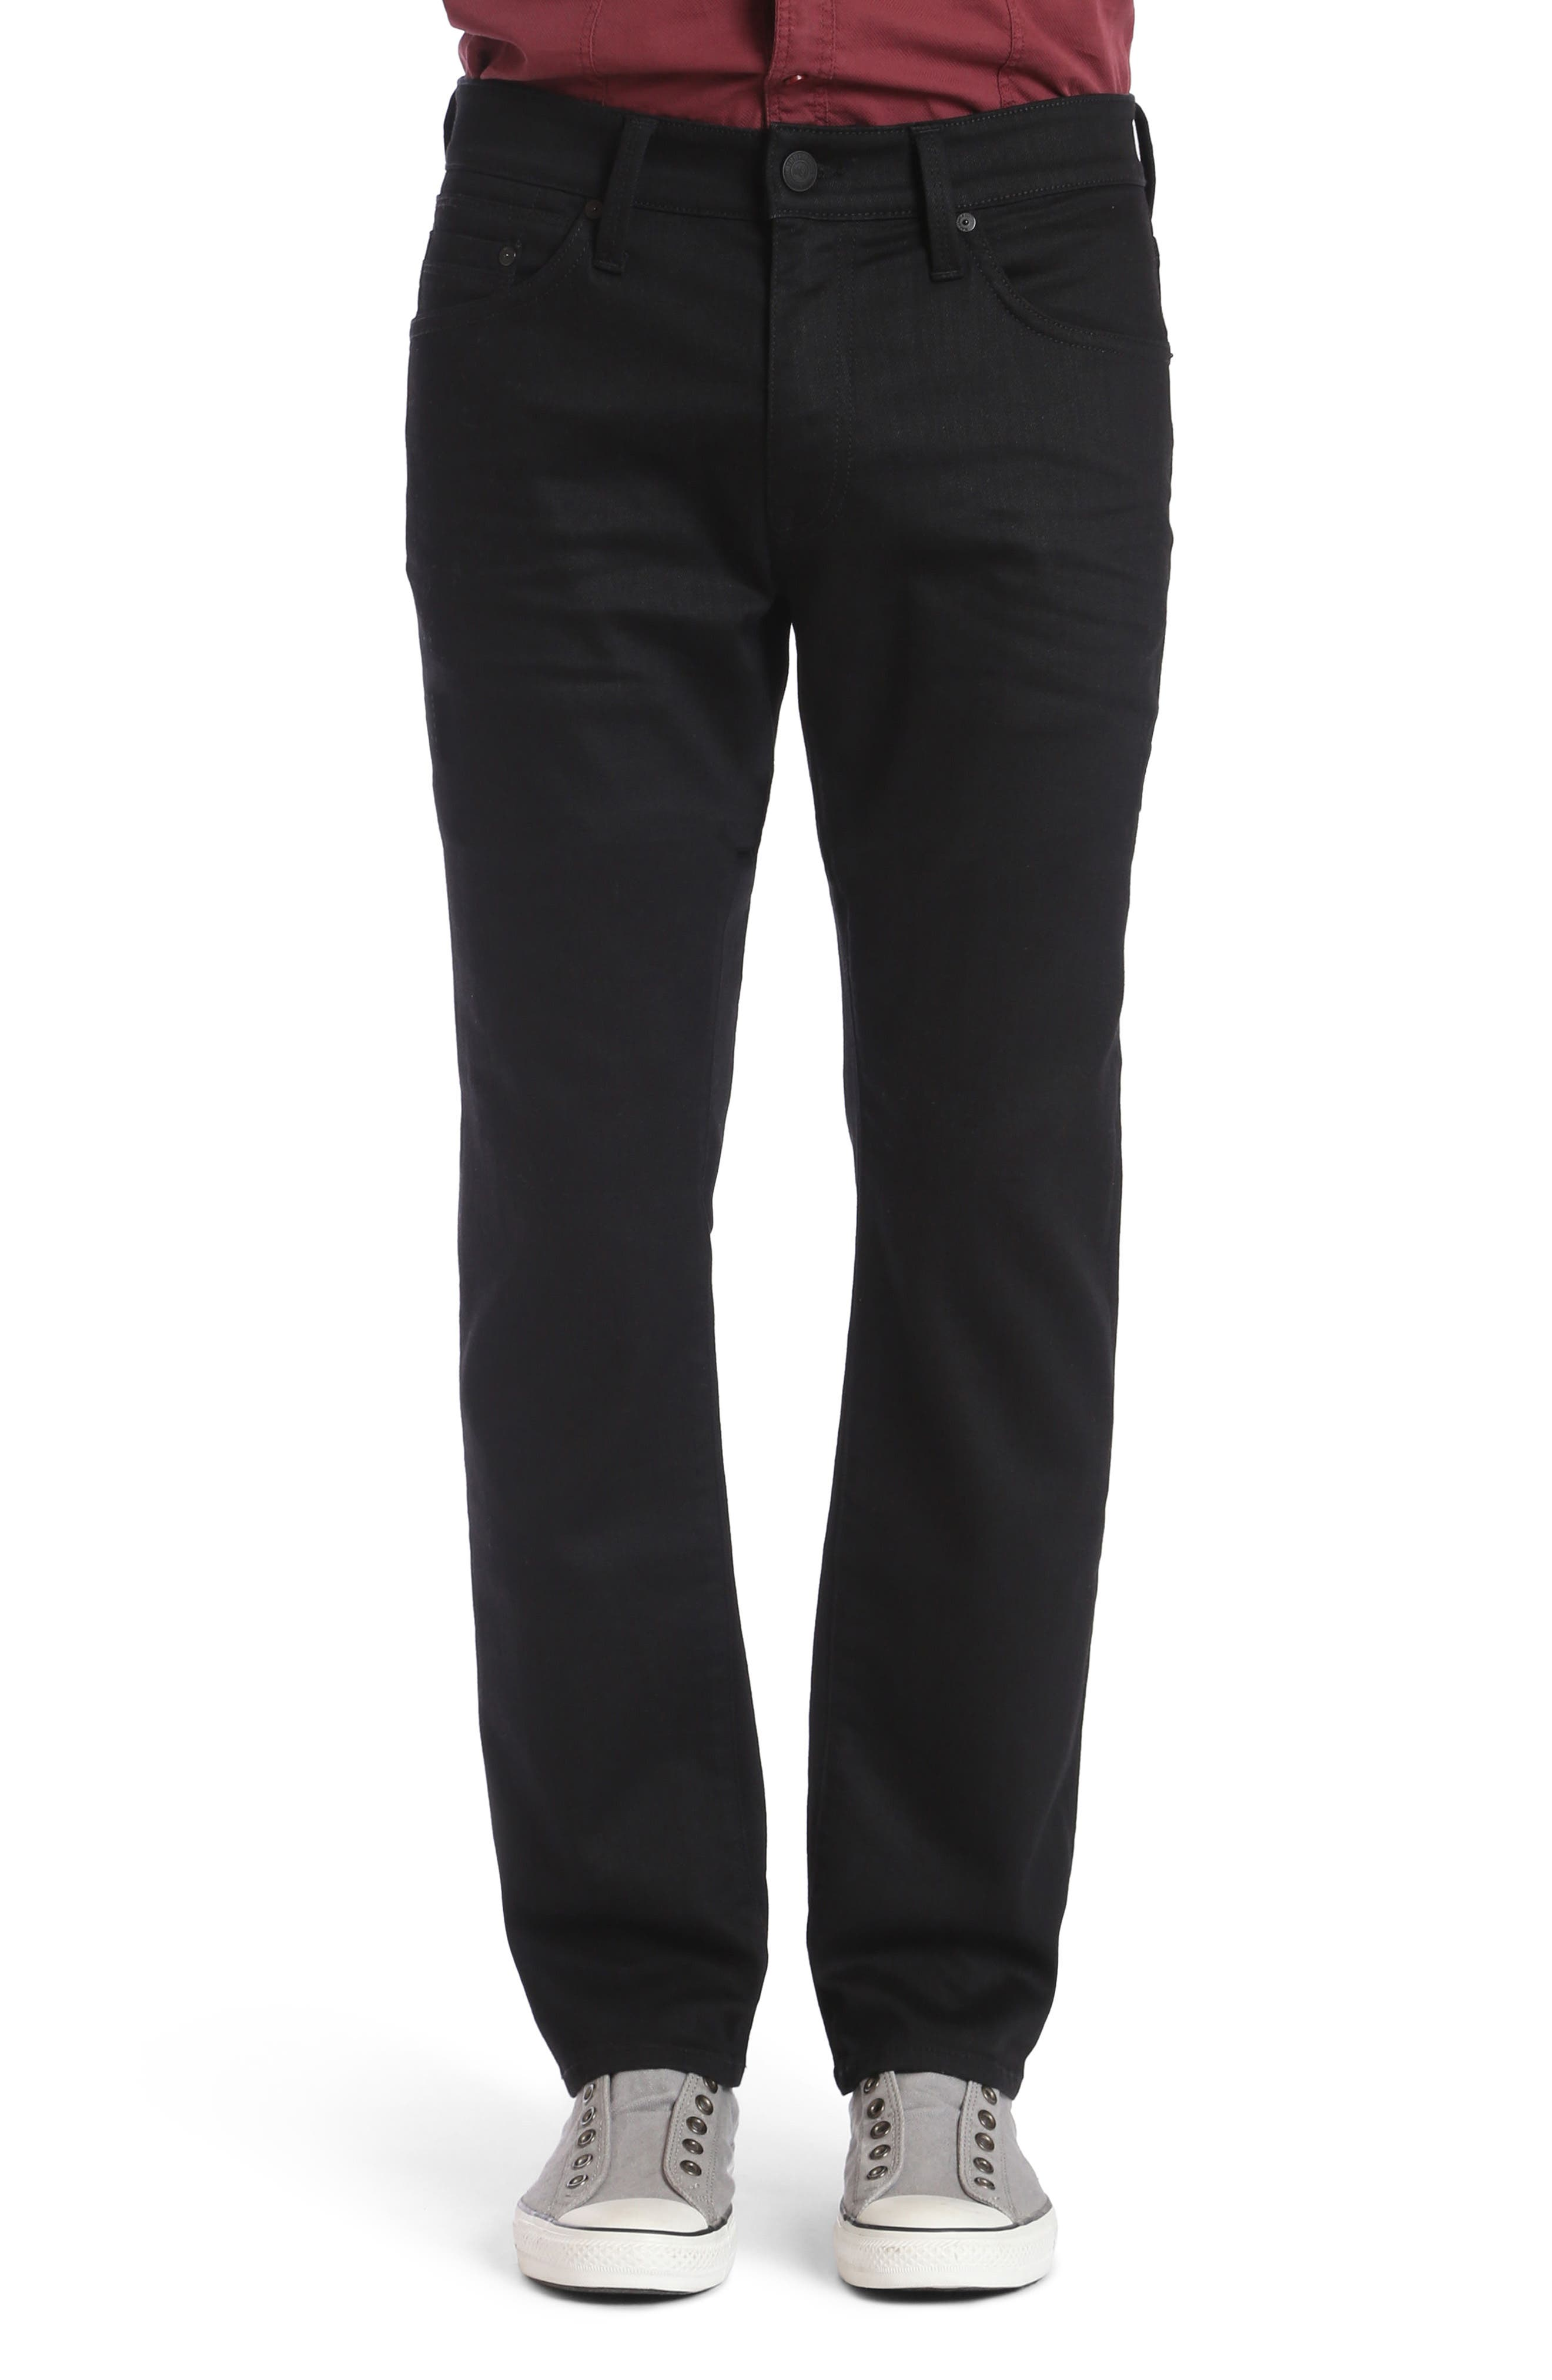 Zach Straight Fit Jeans,                         Main,                         color, 001